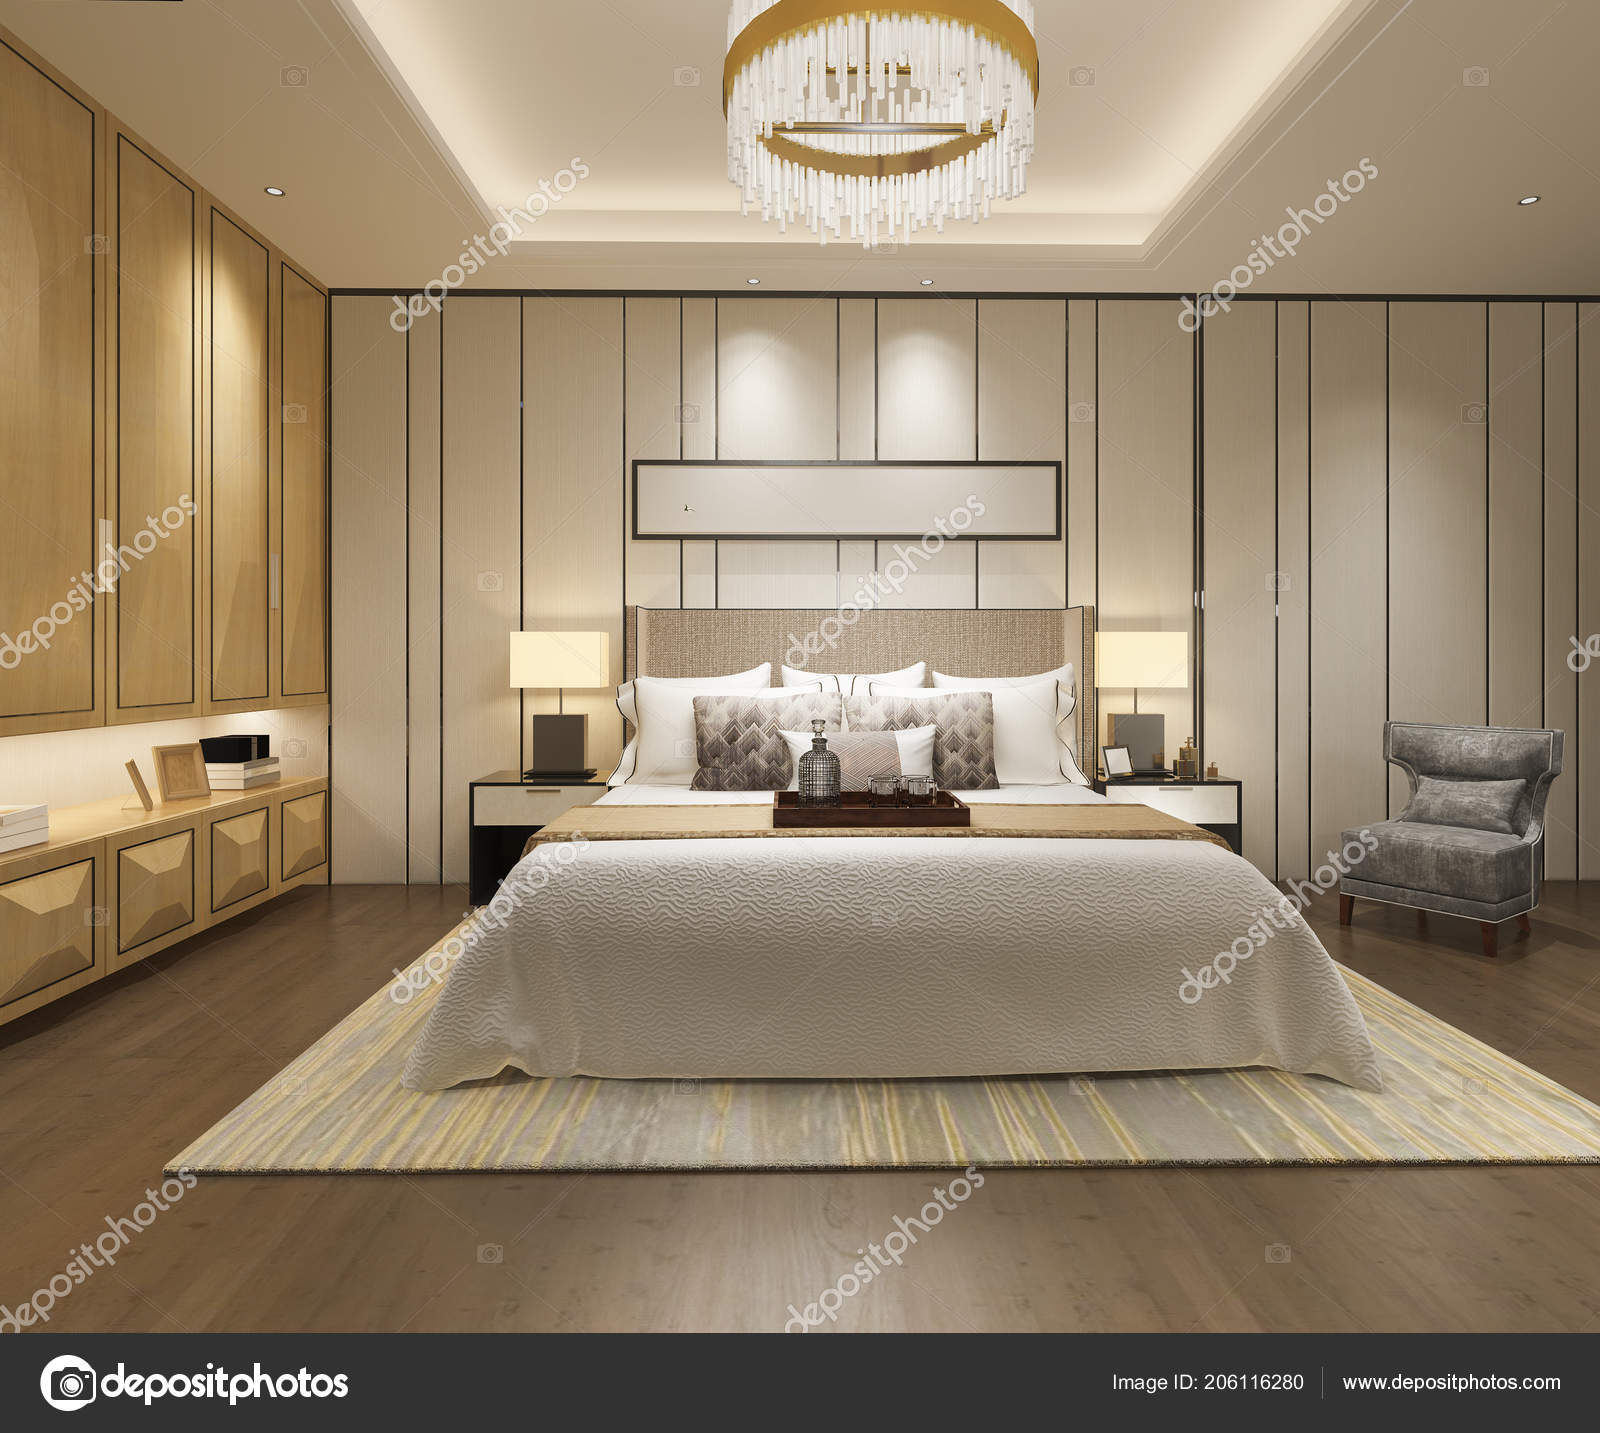 3d Rendering Luxury Modern Bedroom Suite In Hotel With Wardrobe And Walk Closet Photo By Dit26978